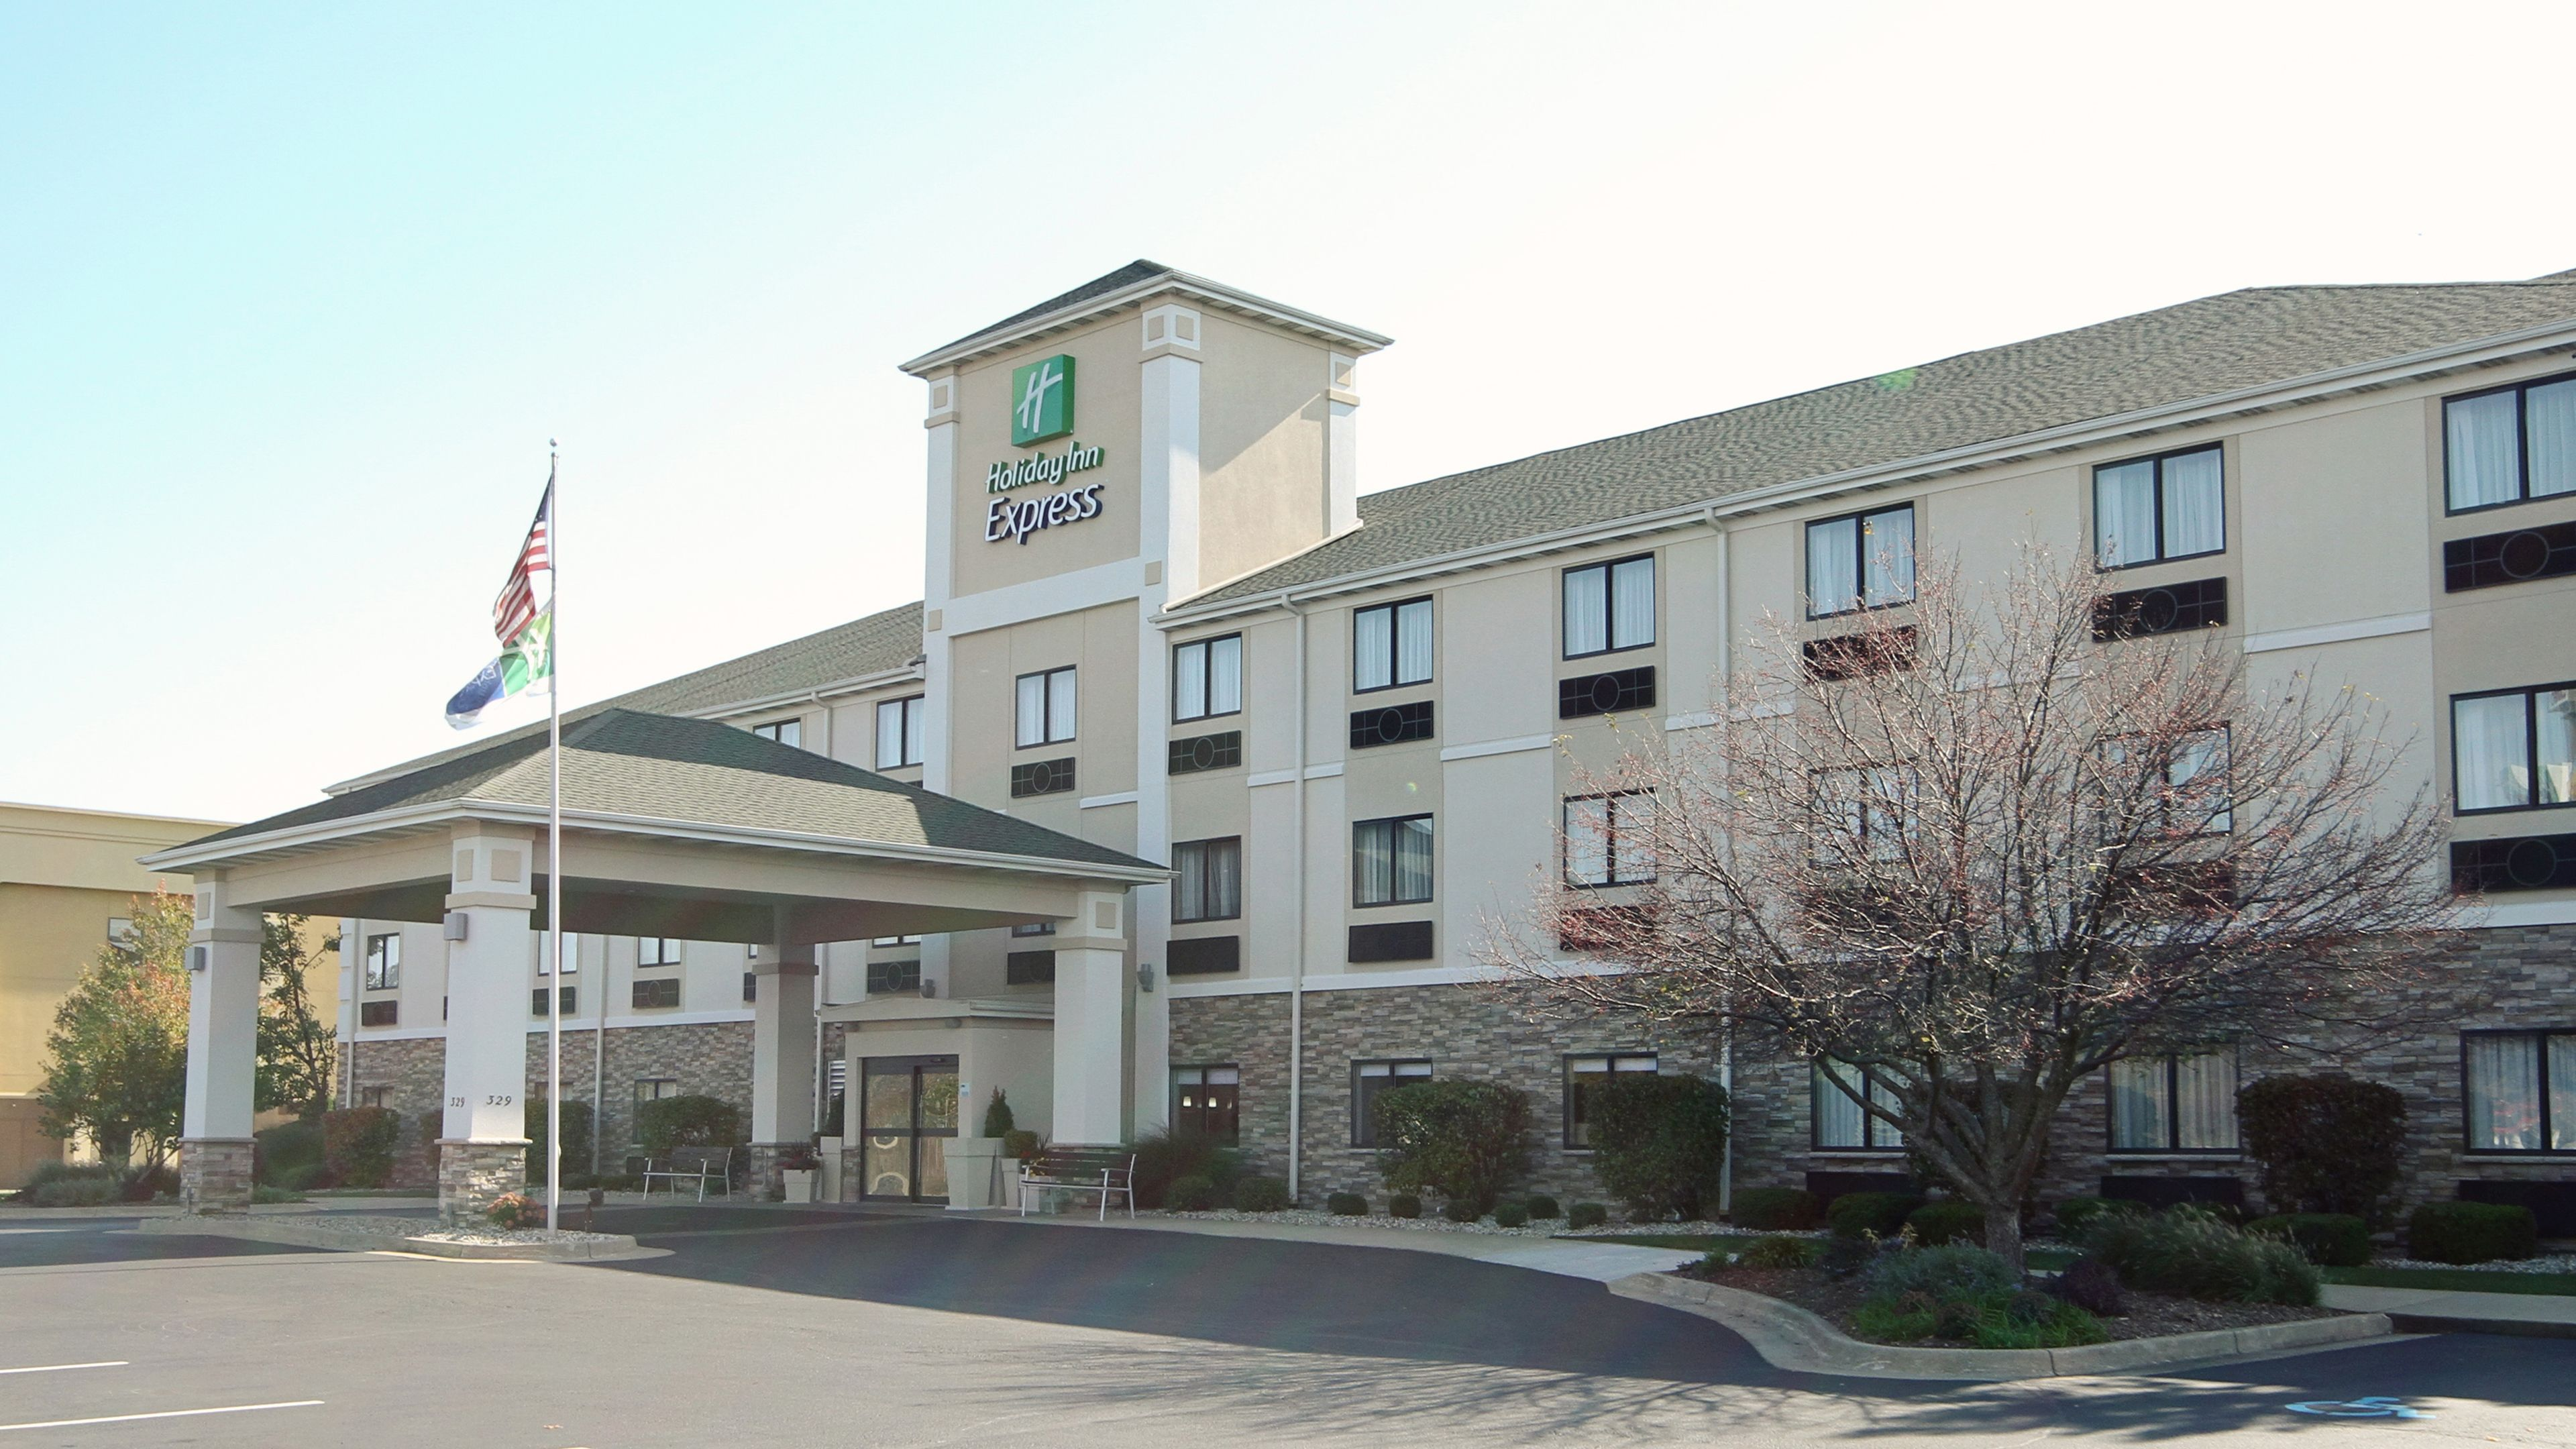 holiday inn express suites marion in marion oh 43302. Black Bedroom Furniture Sets. Home Design Ideas